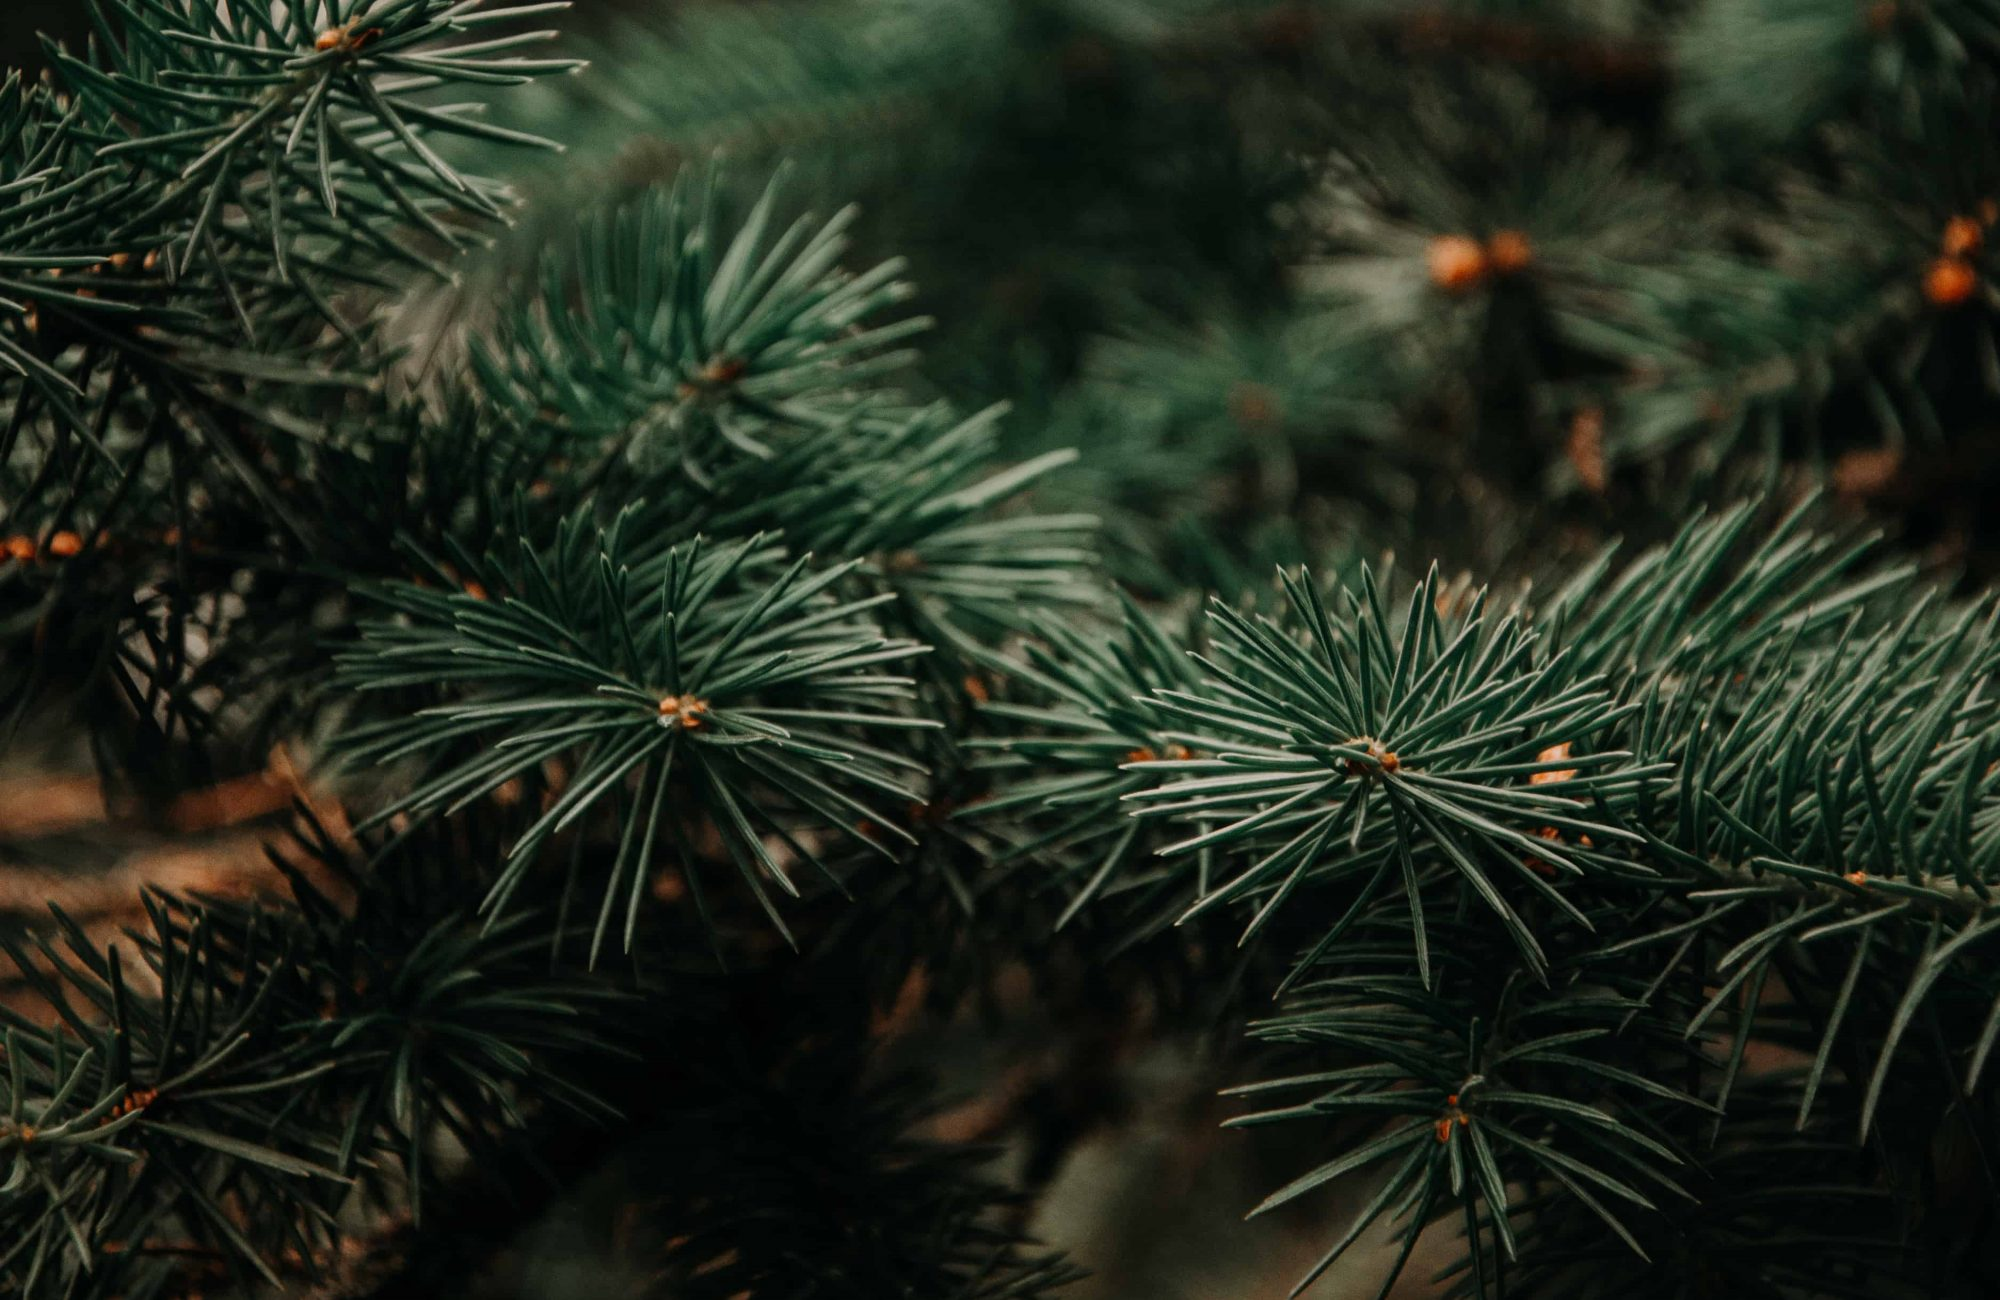 Photography of Green Pine Tree